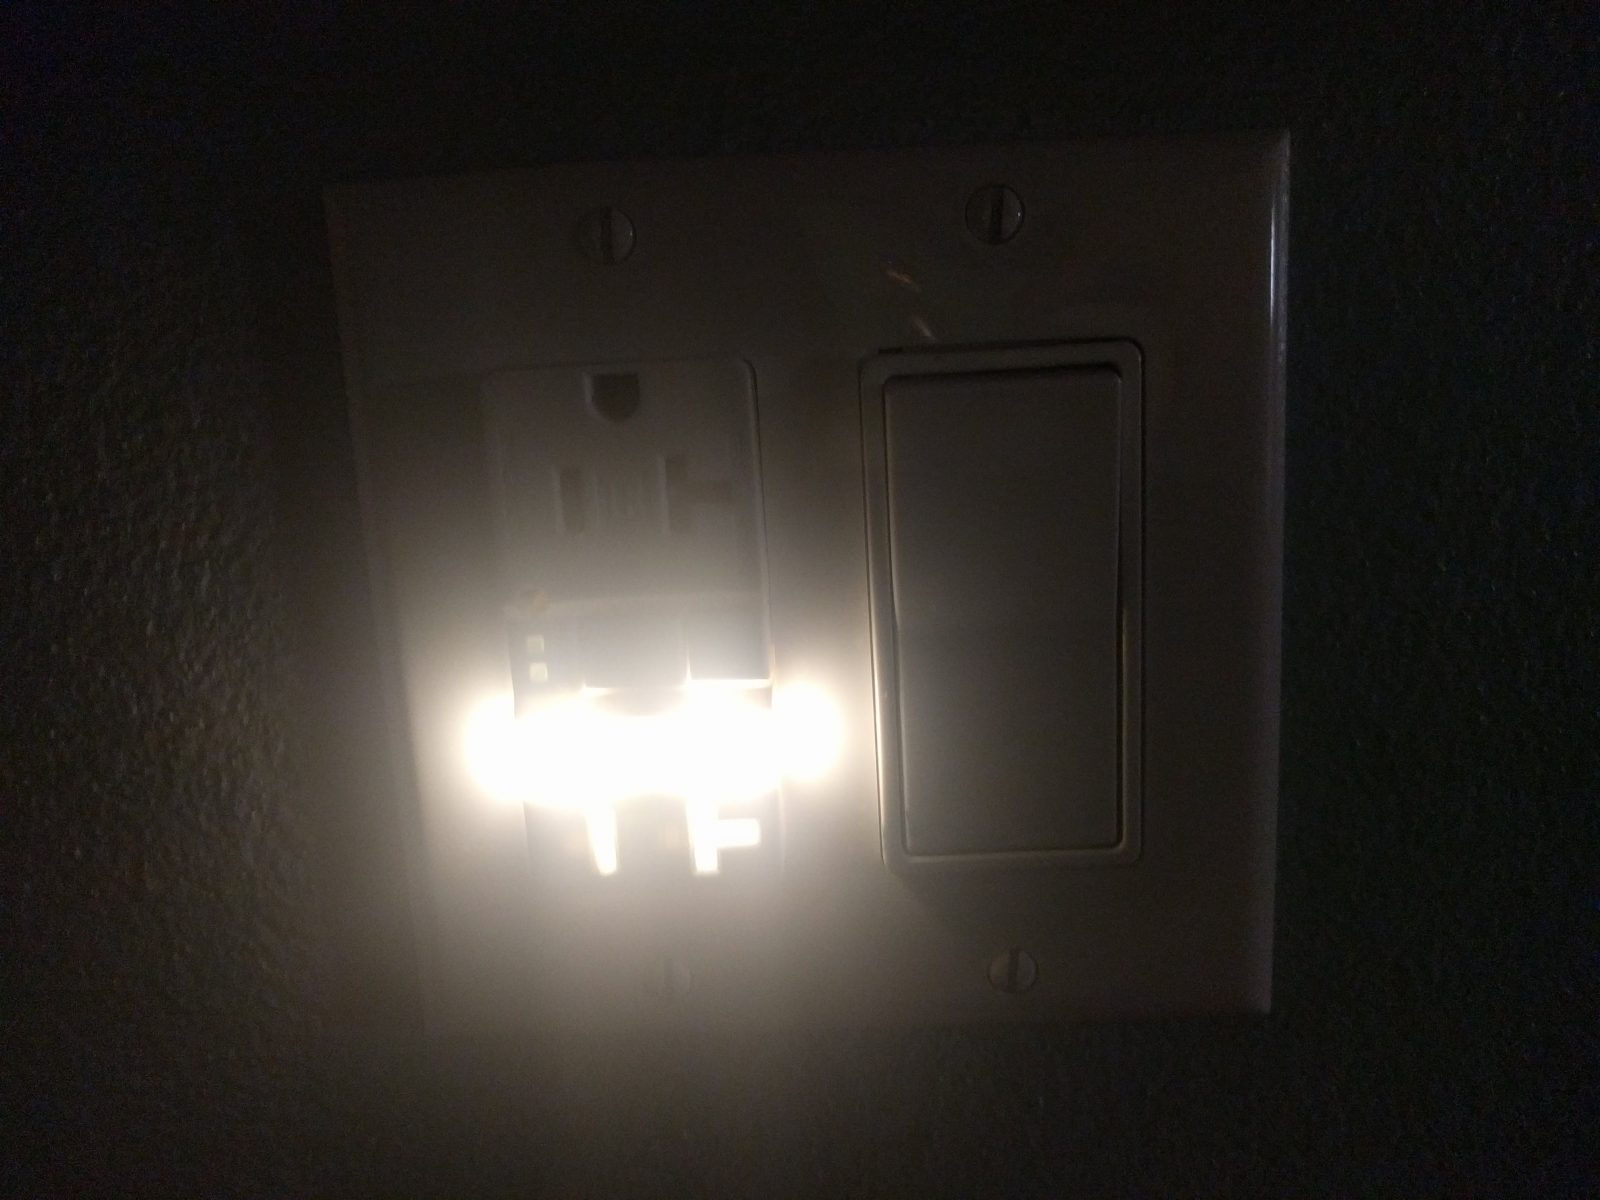 night light built-in to the light switch